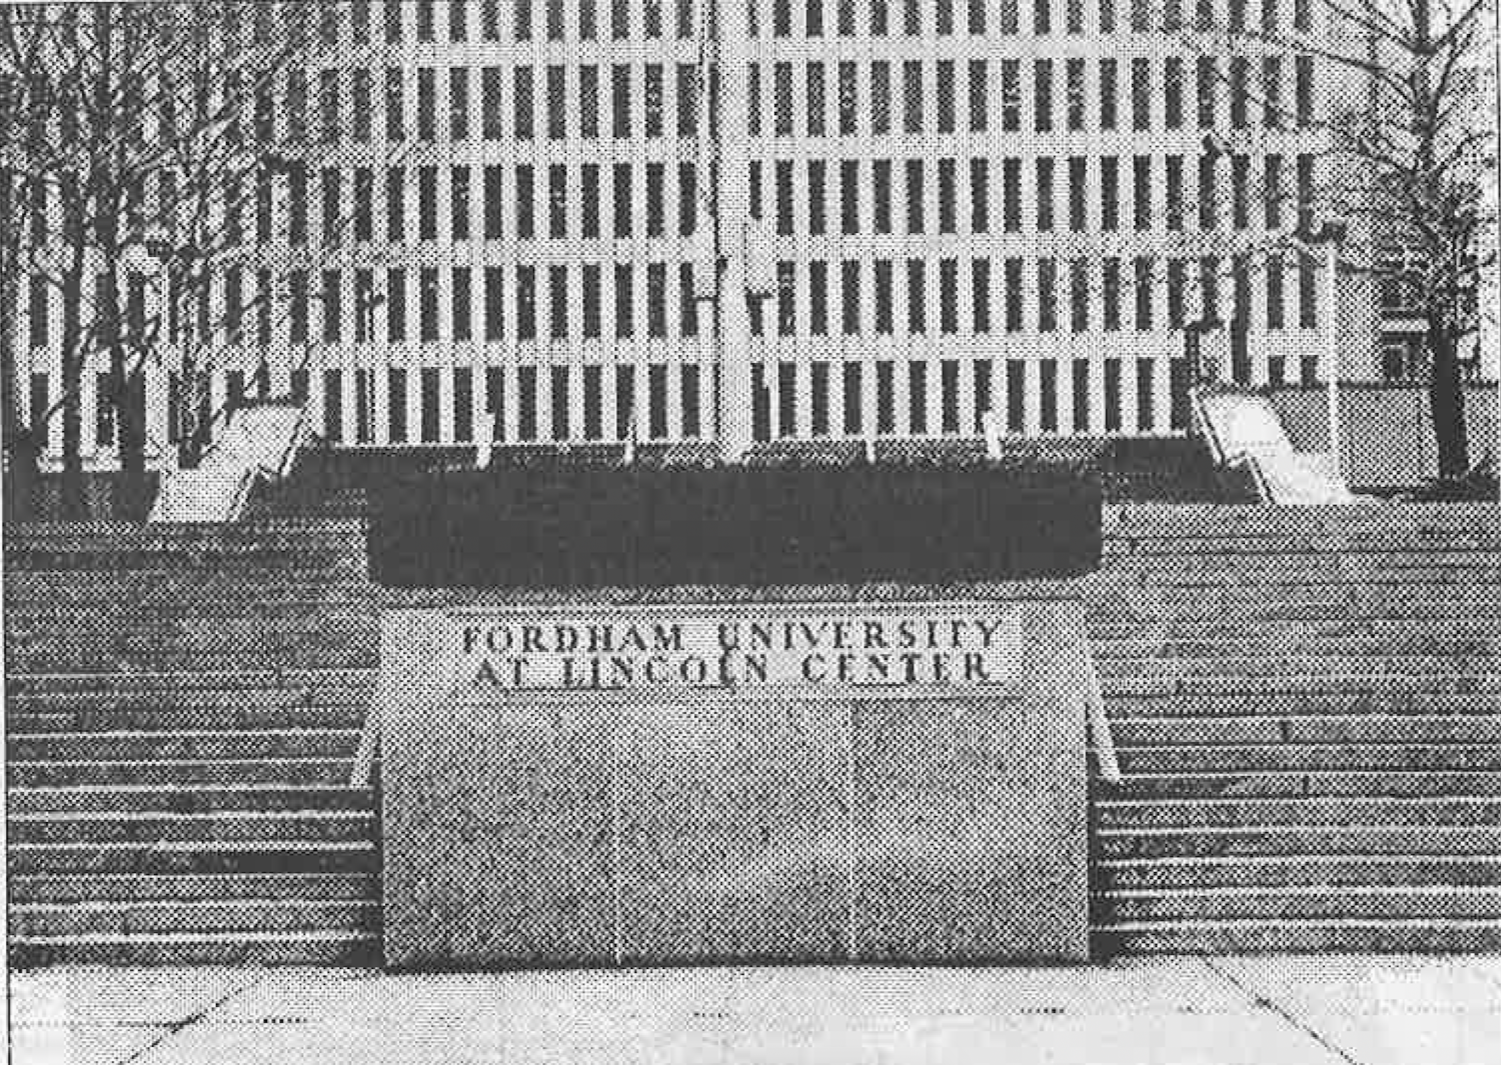 The Fordham Lincoln Center Campus has gone through a number of changes since it was founded in the late 1960s. The Board of Advisors was one element of continuity from 1989 to 2019.